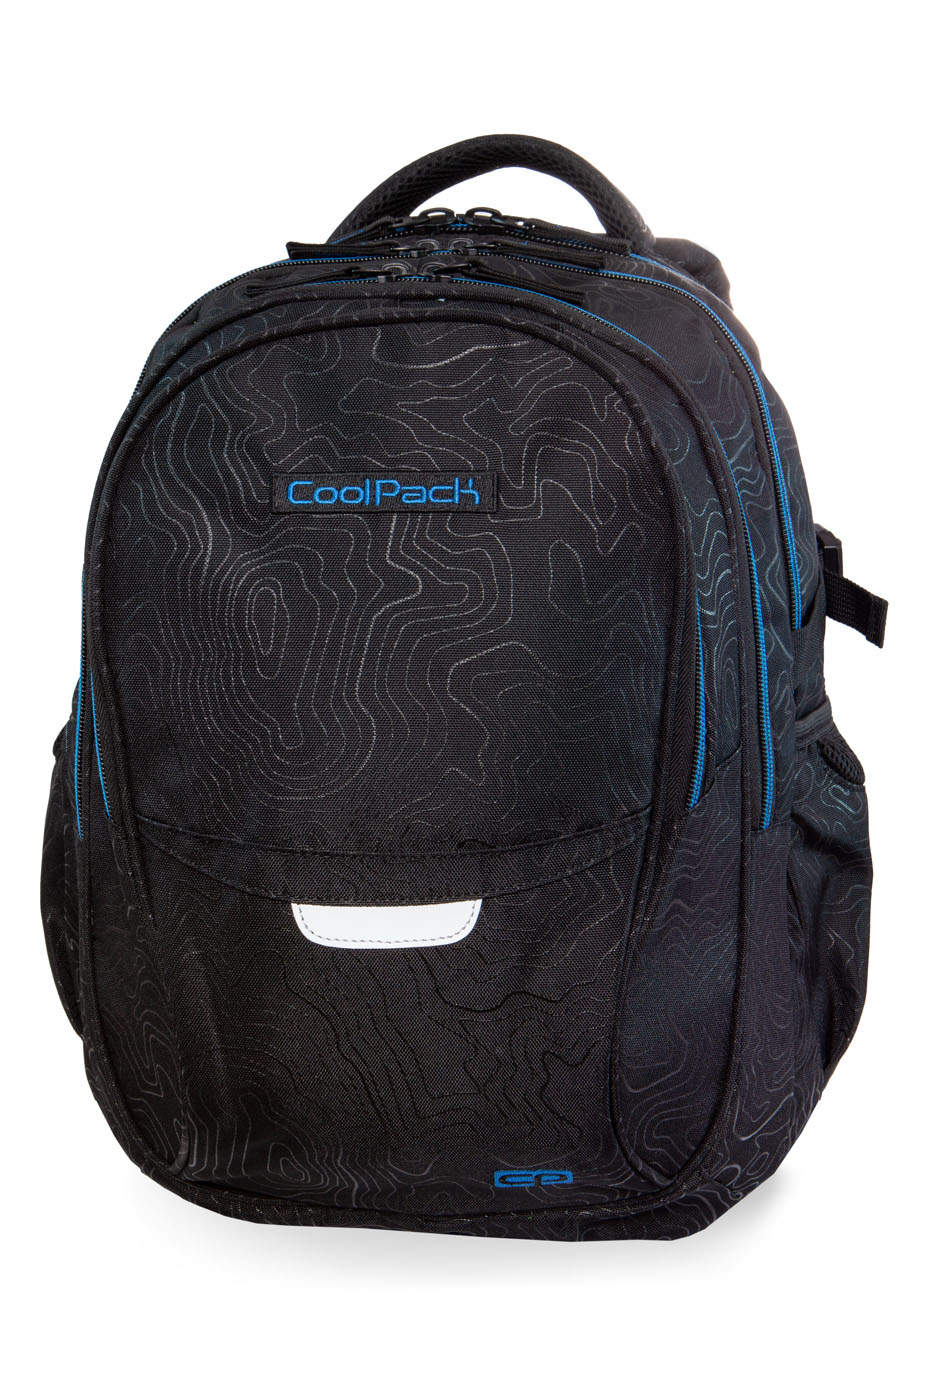 Coolpack   factor  rygsæk   topography blue